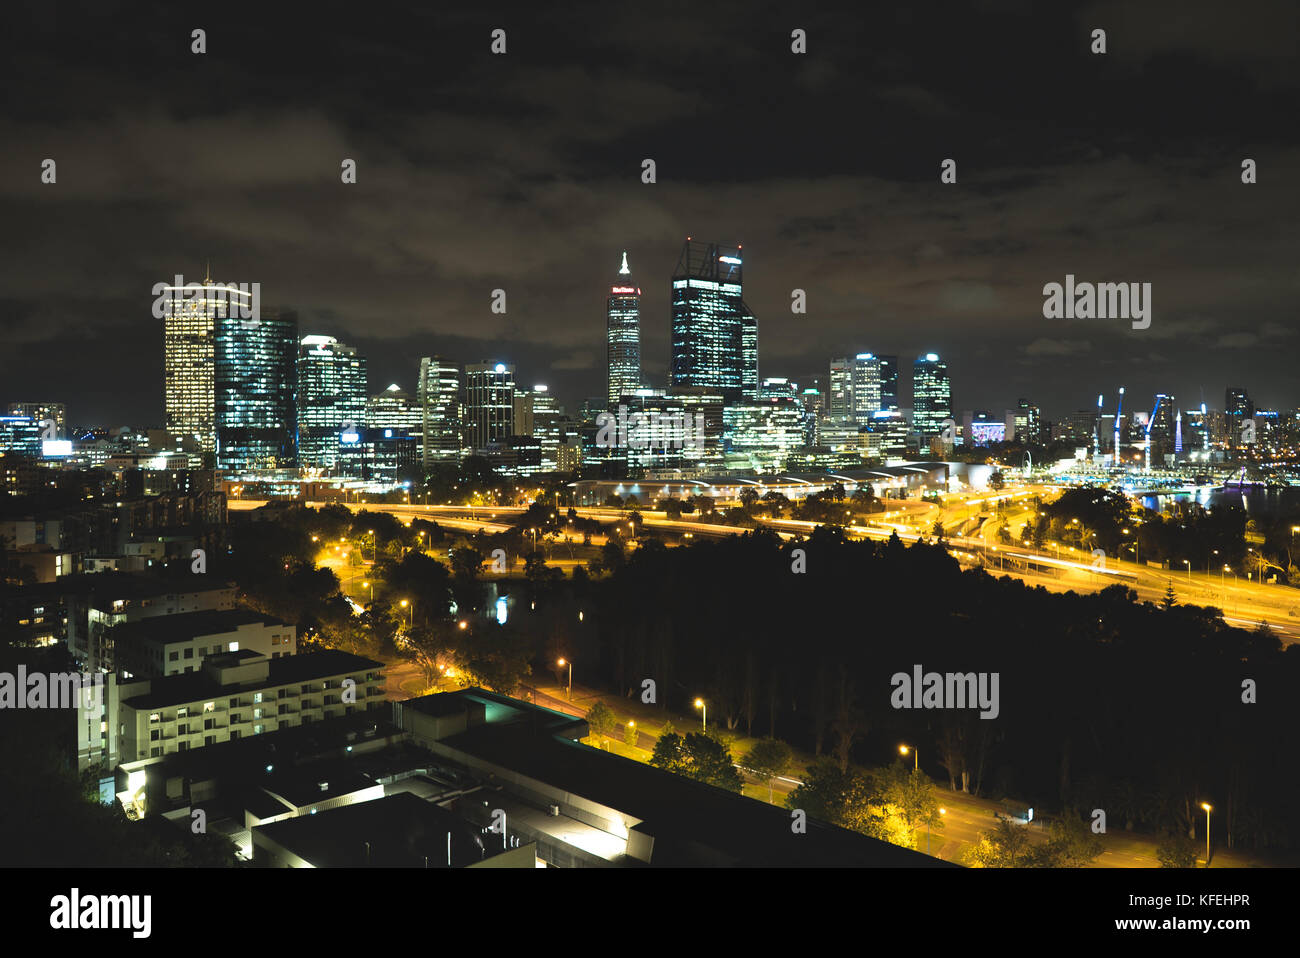 longtime exposure of the city Perth by night from the kings park. - Stock Image